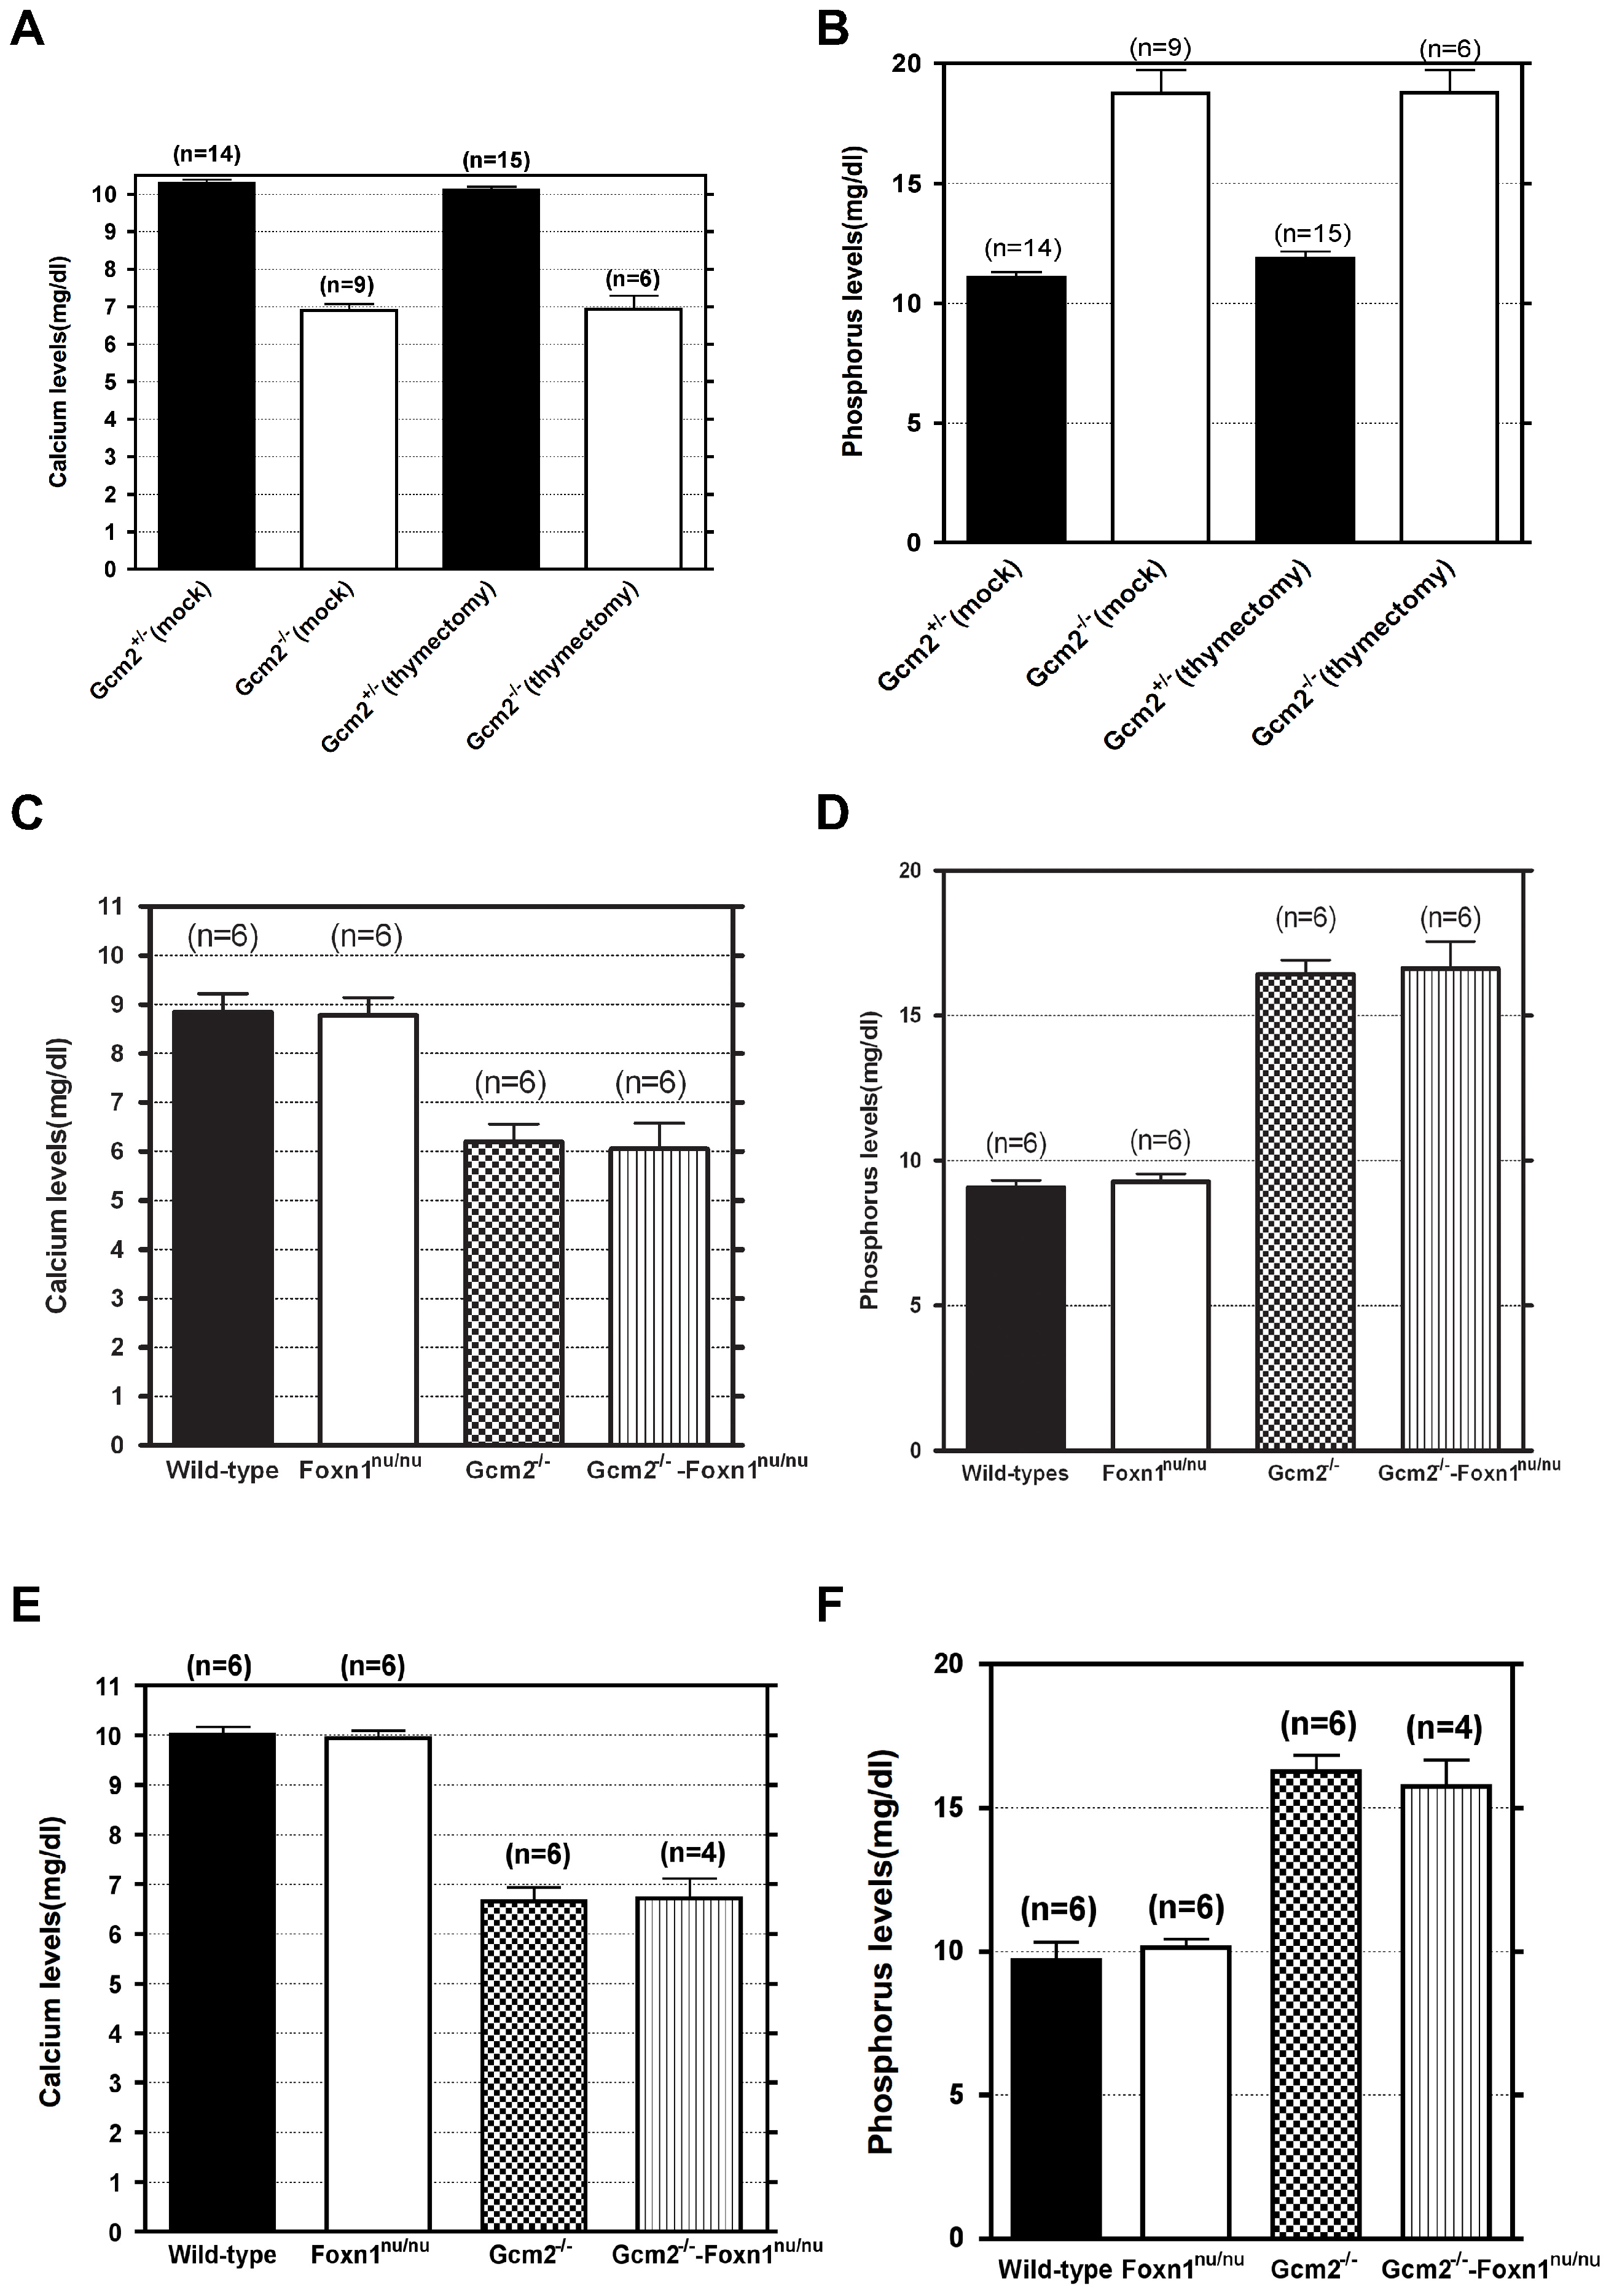 Neither thymectomy nor the <i>Foxn1<sup>nu</sup></i> mutation exacerbated the hypoparathyroidism phenotype in <i>Gcm2</i><sup>−/−</sup> mutants.